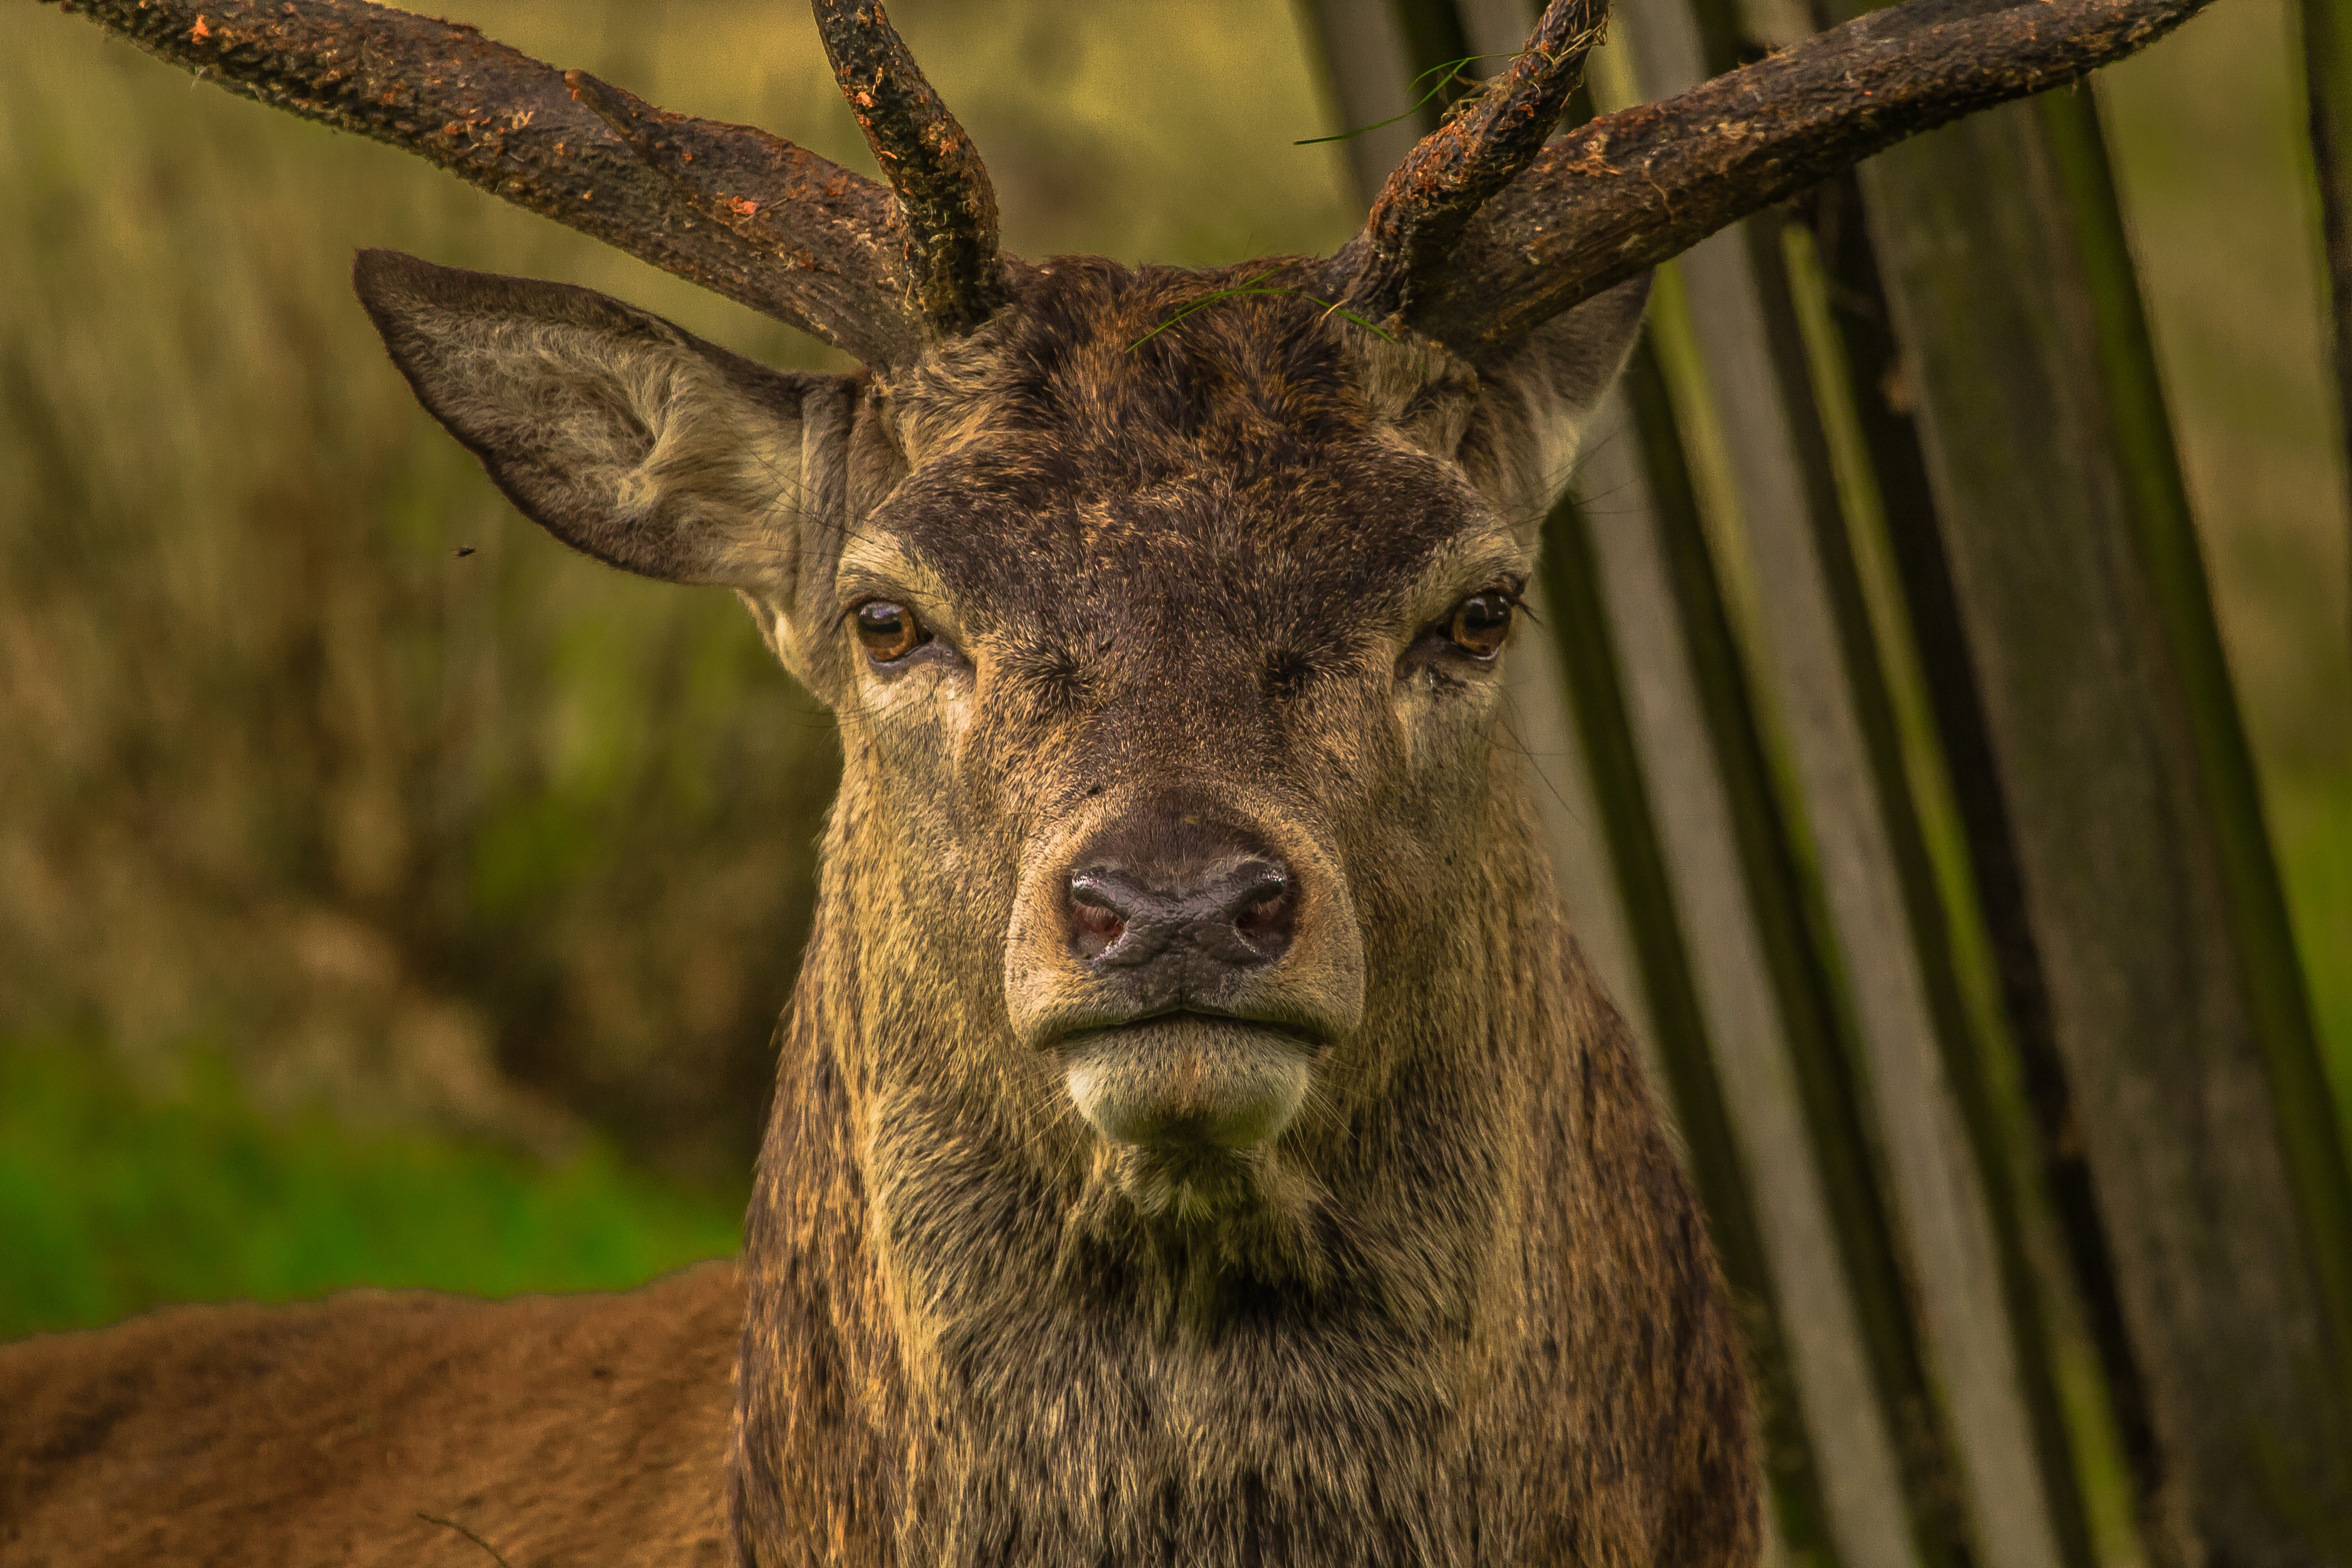 110294 download wallpaper Animals, Deer, Muzzle, Horns, Sight, Opinion screensavers and pictures for free